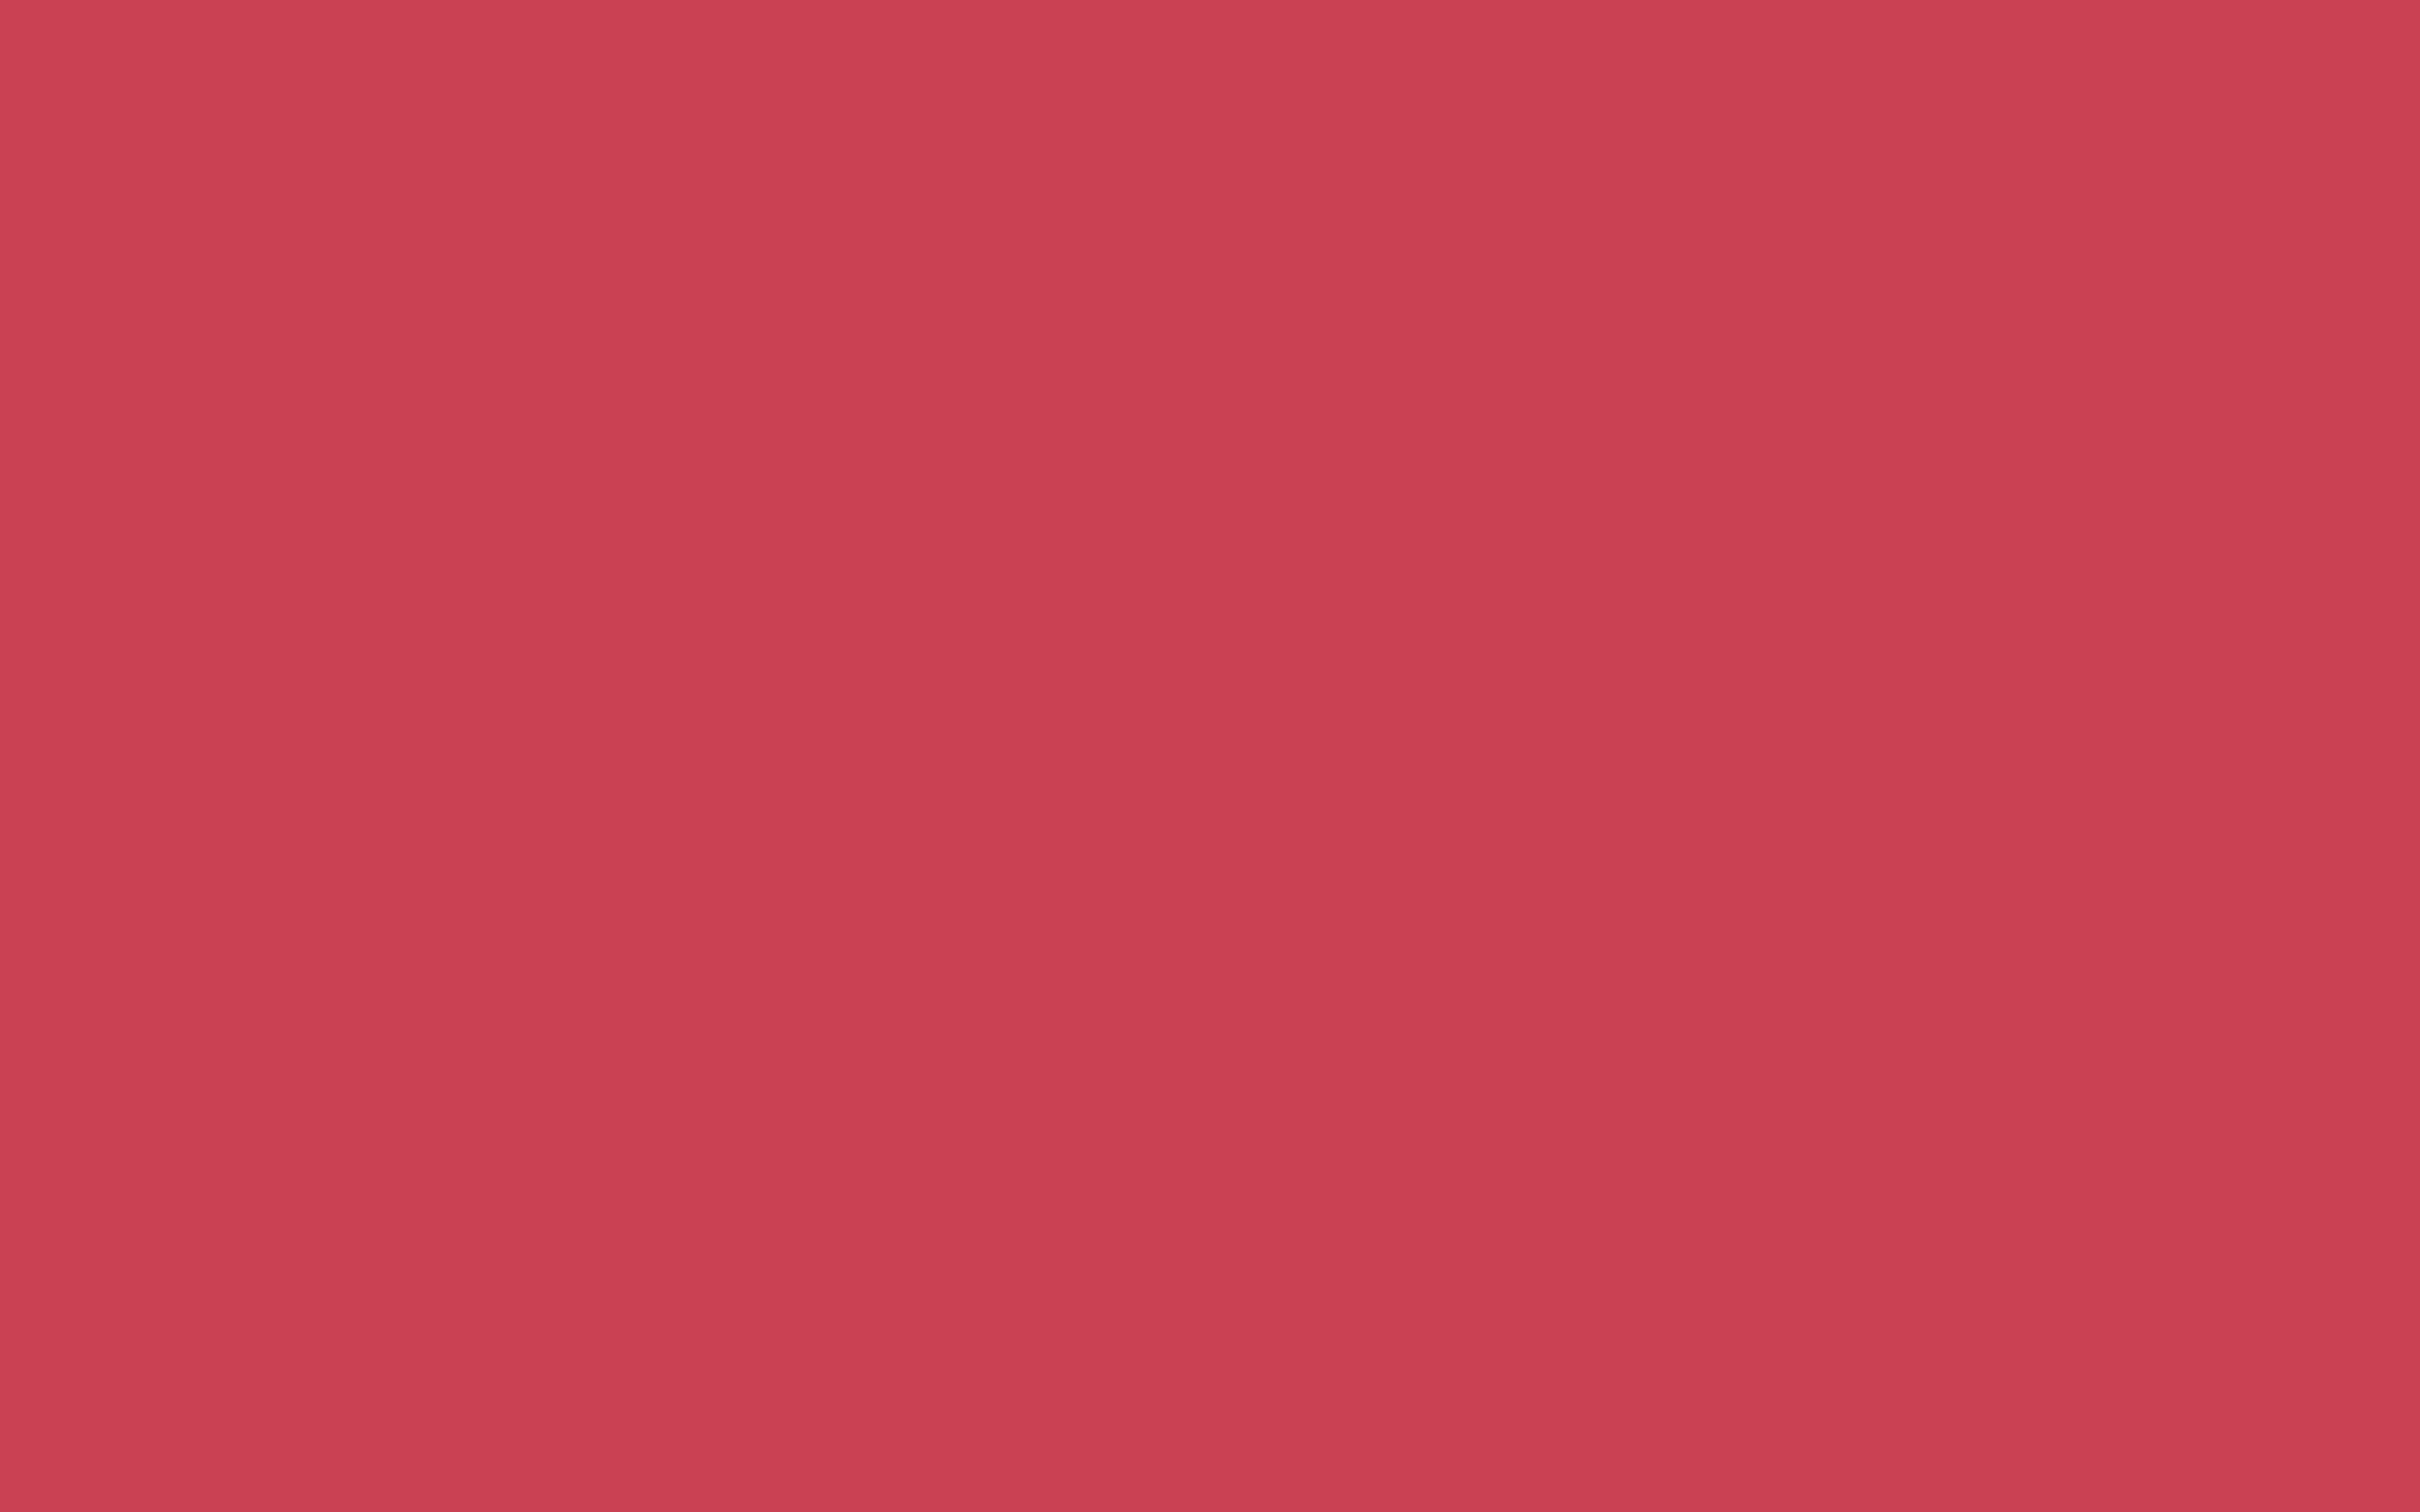 2560x1600 Brick Red Solid Color Background